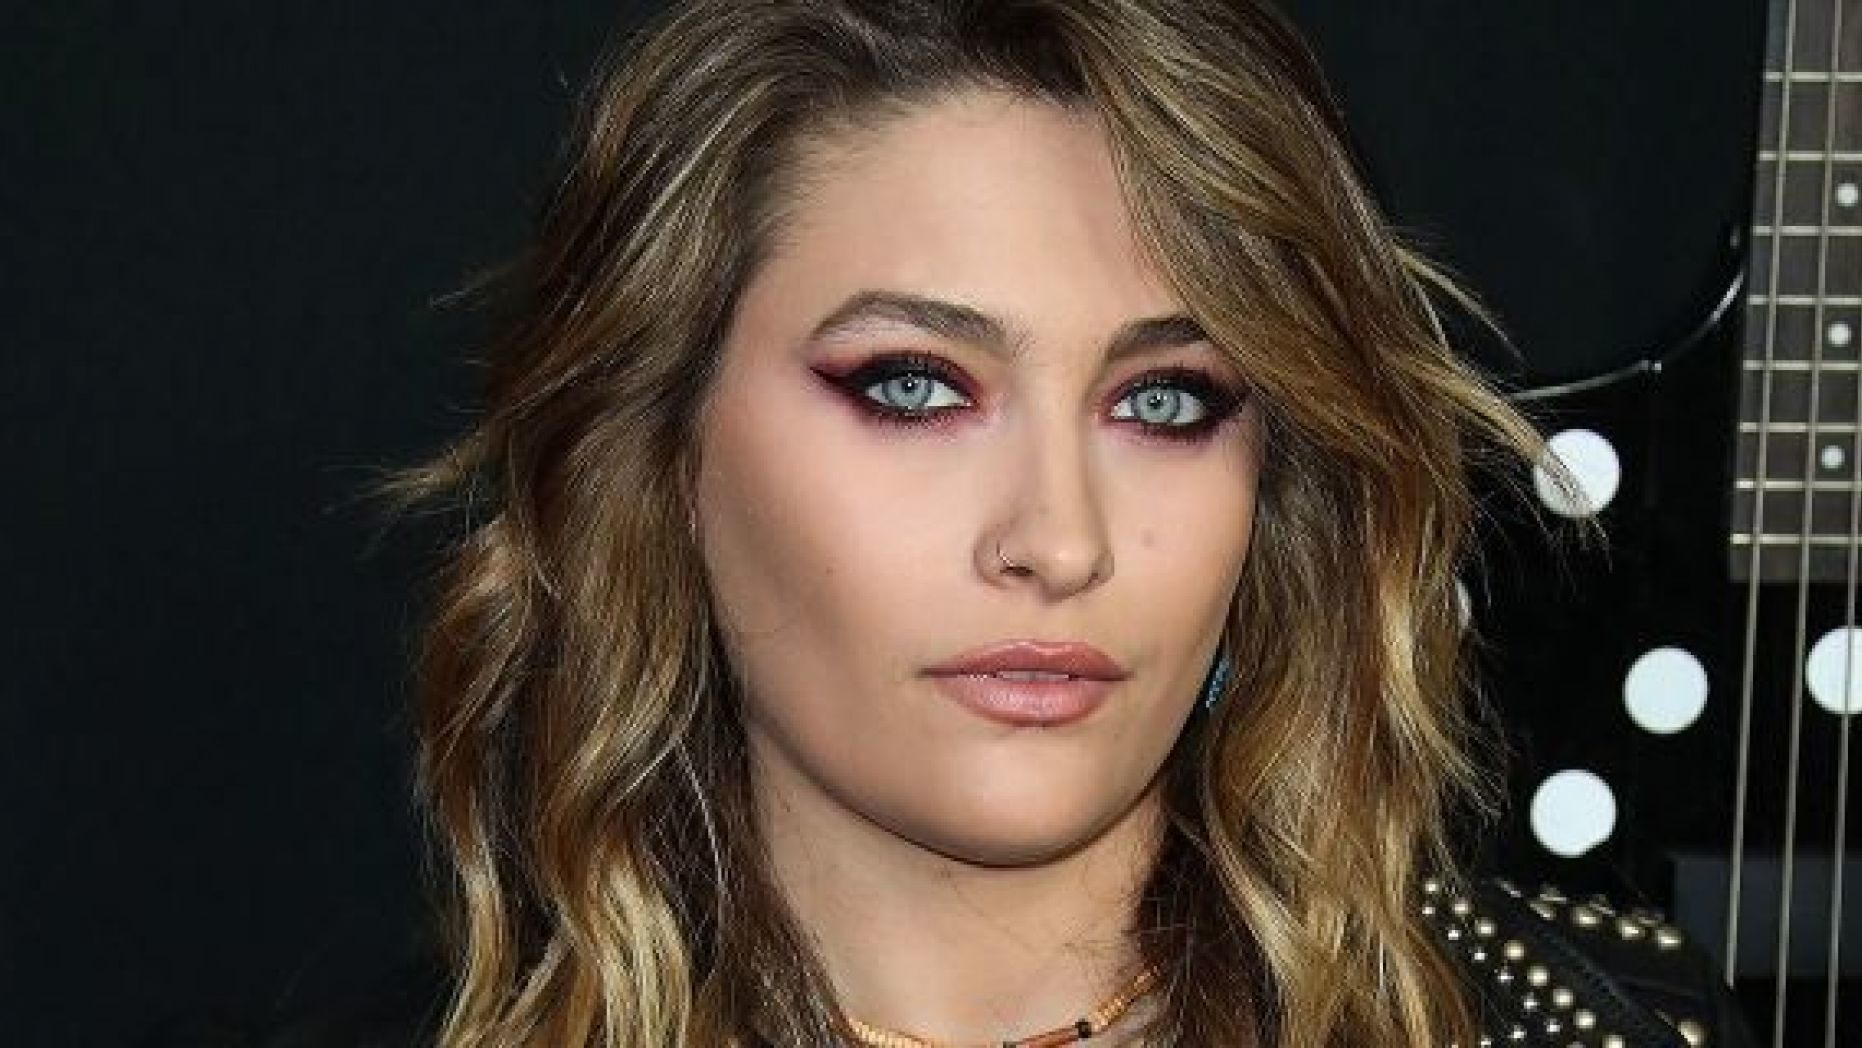 paris-jackson-pals-claim-she-cut-her-arm-by-accident-during-bash-after-reports-she-attempted-suicide